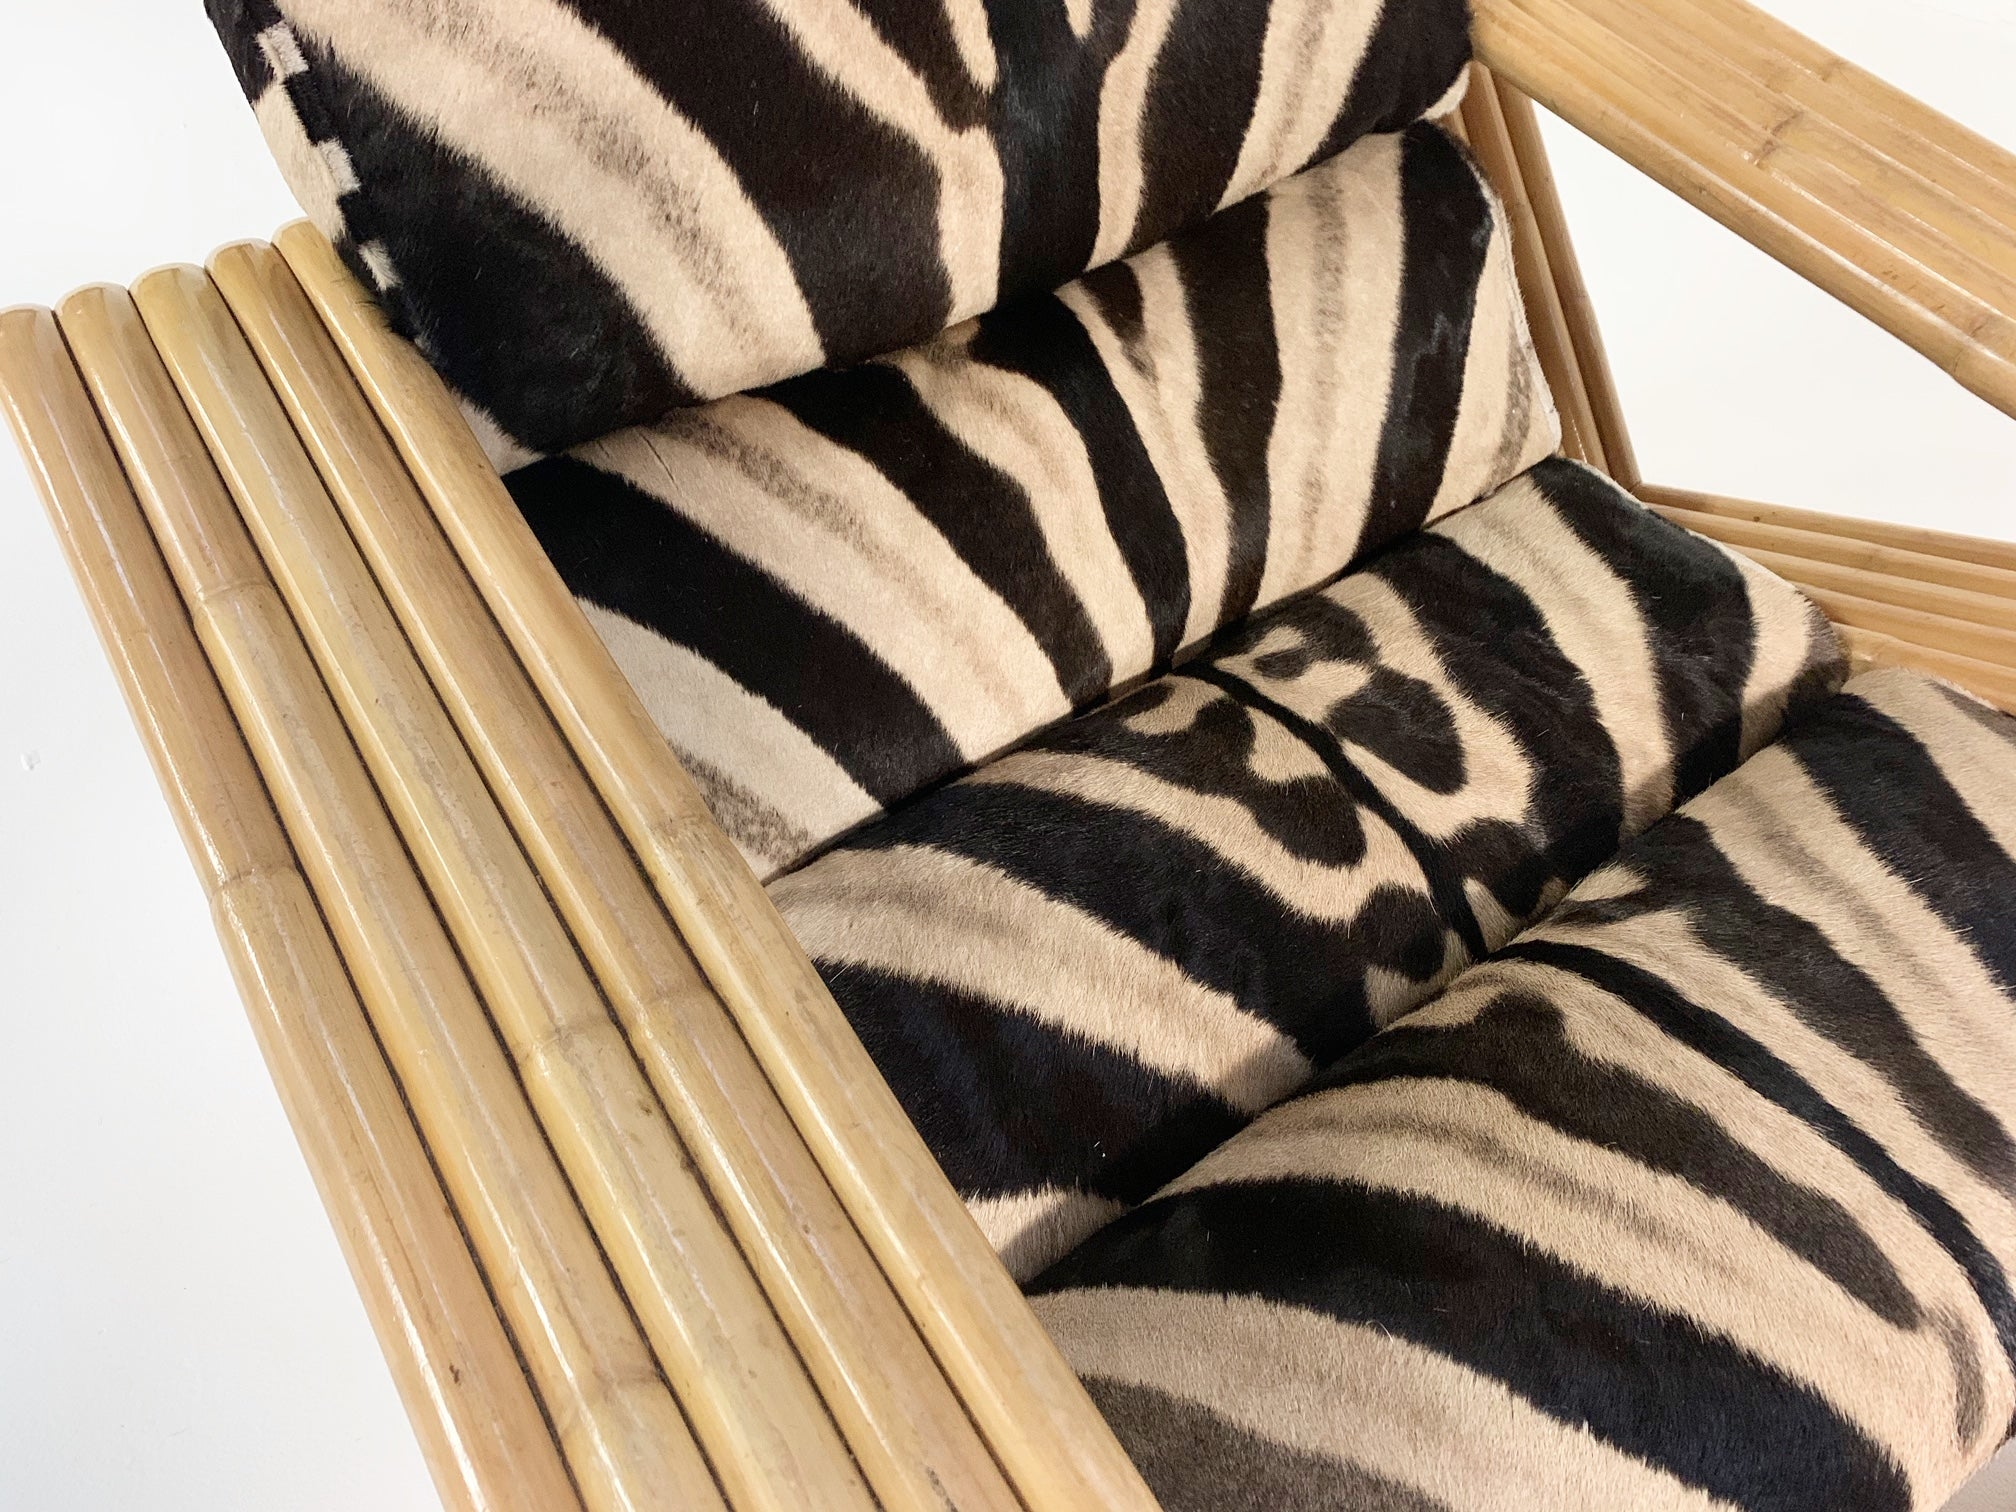 Rattan Lounge Chair and Ottoman in Zebra Hide